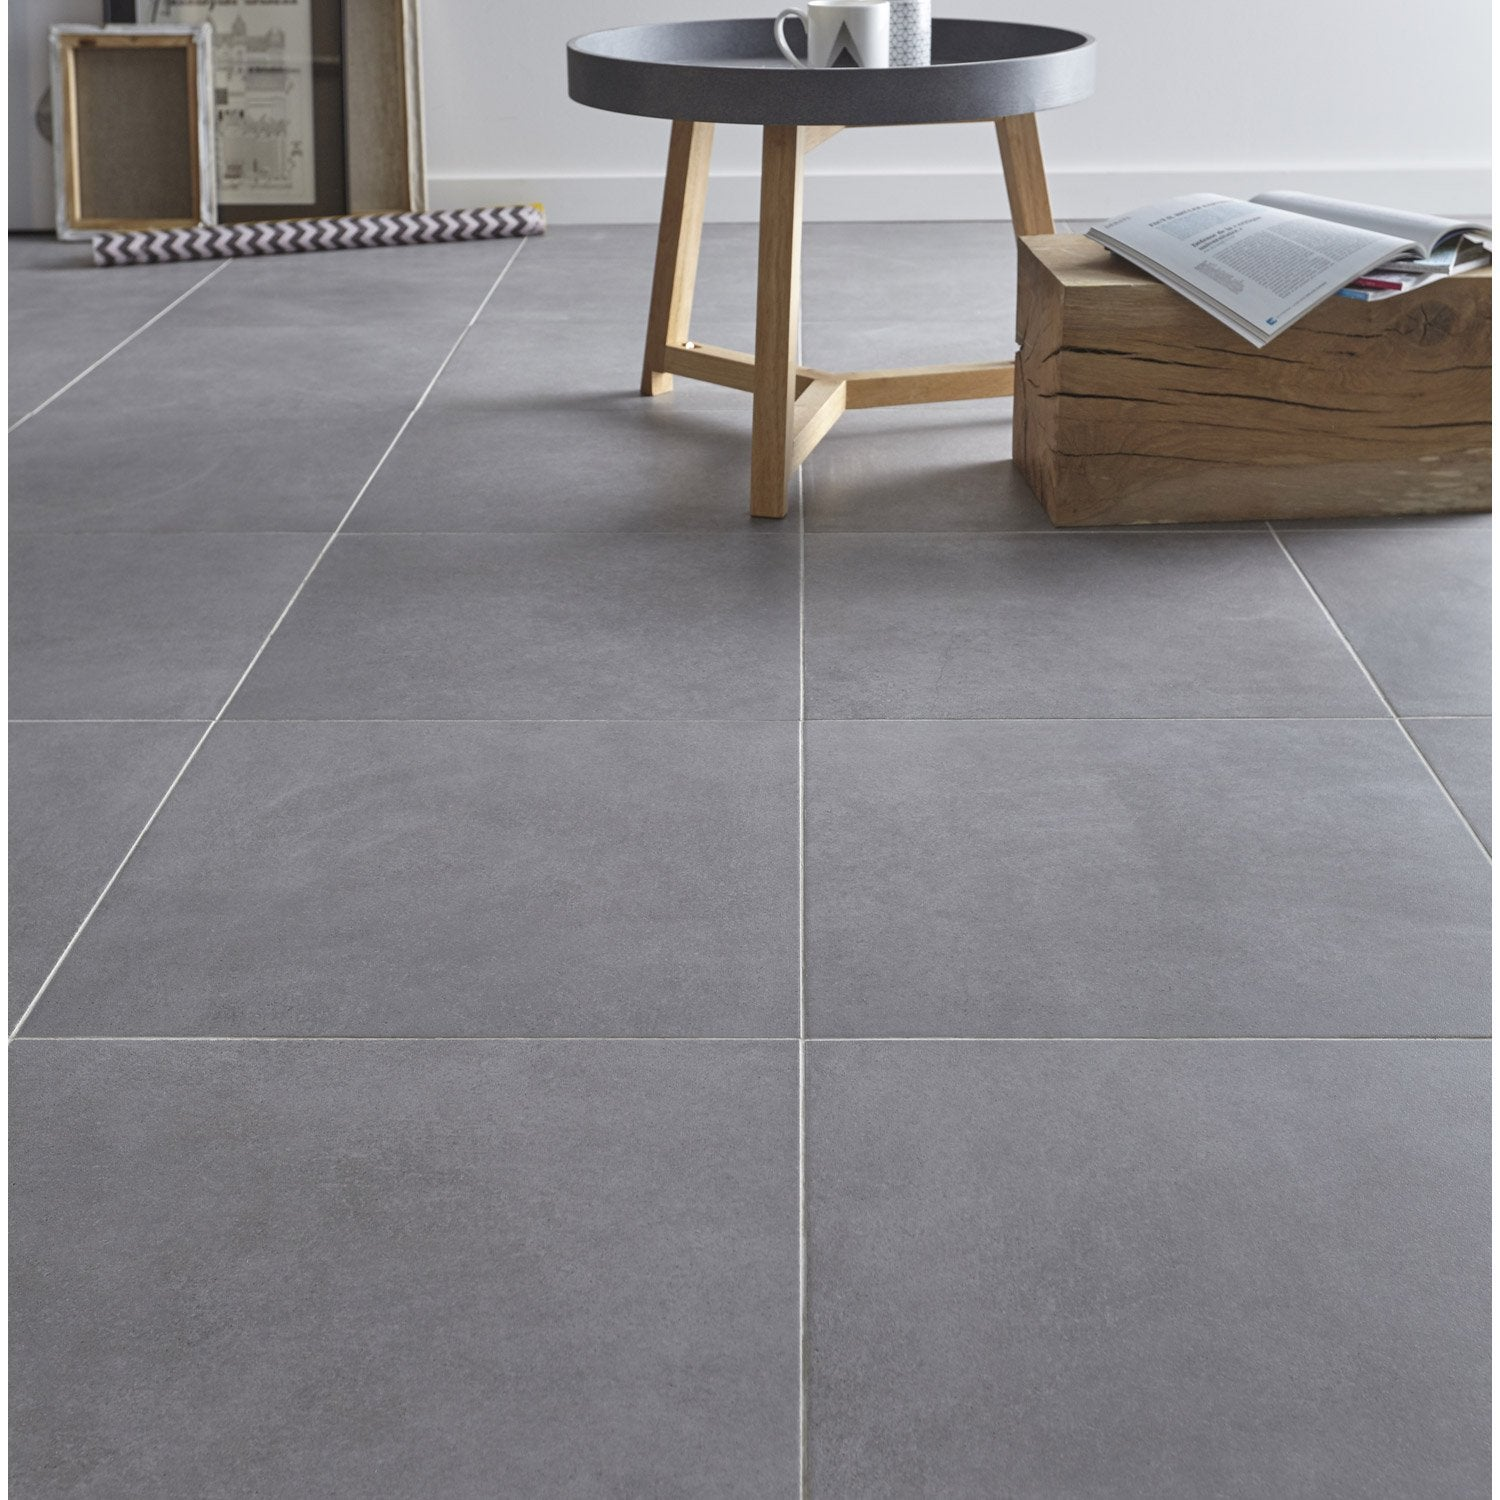 Leroy merlin carrelage sol interieur 28 images leroy for Carrelage salle de bain gris clair leroy merlin